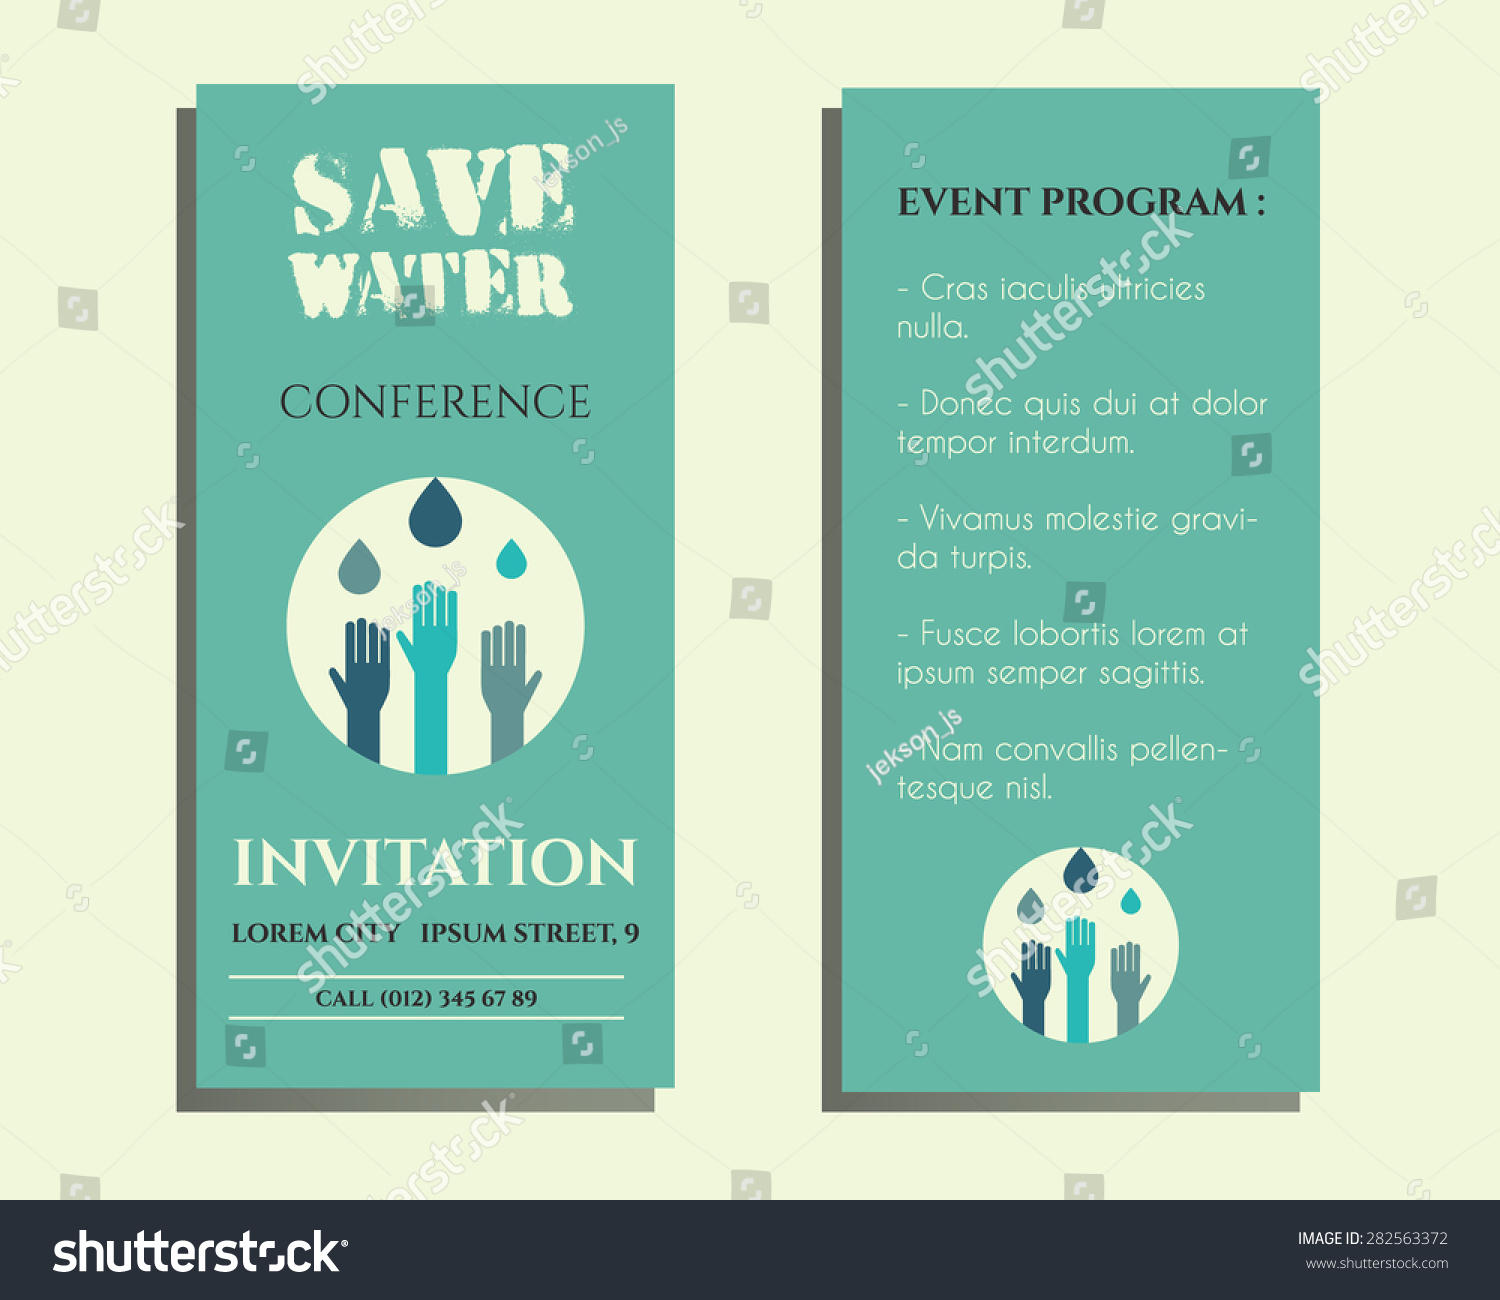 Save water conference flyer invitation template stock photo photo save water conference flyer invitation template with drops and hands logo template isolated on bright stopboris Choice Image